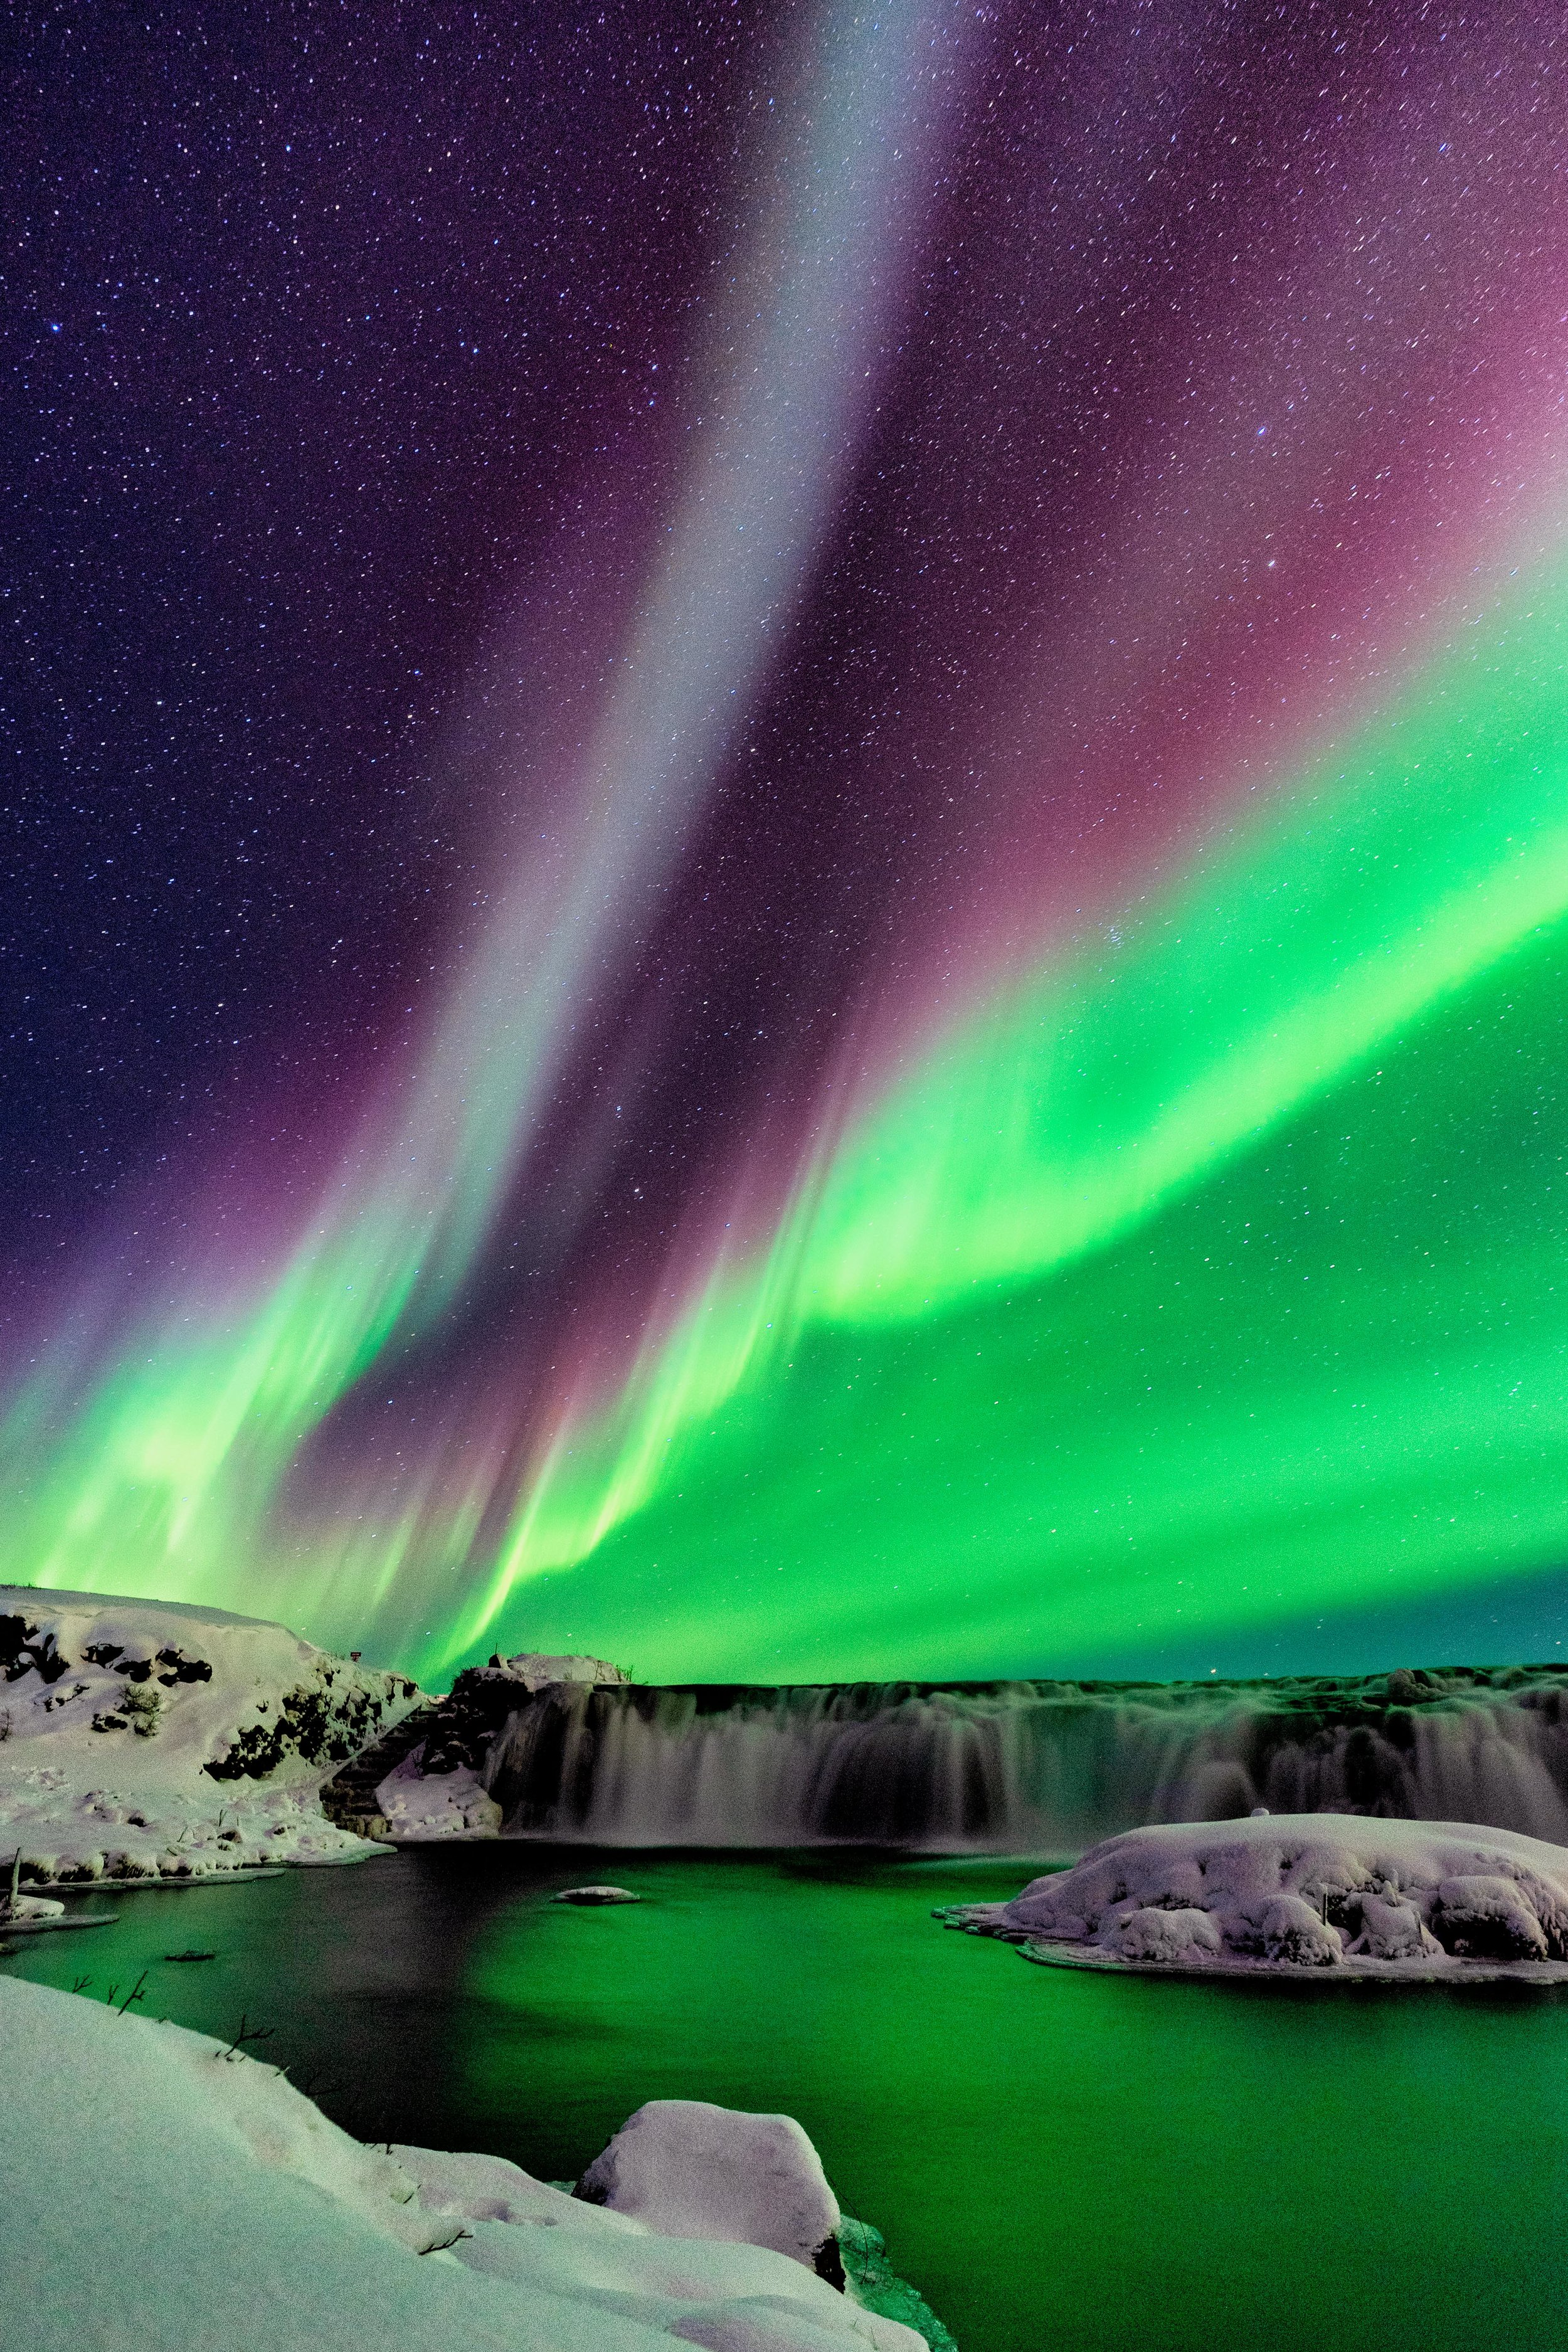 Iceland. snow. travel. adventure. photography. trip. epic landscape. snow. cold. freezing. sunrise. nothern lights. epice landscape.jpg